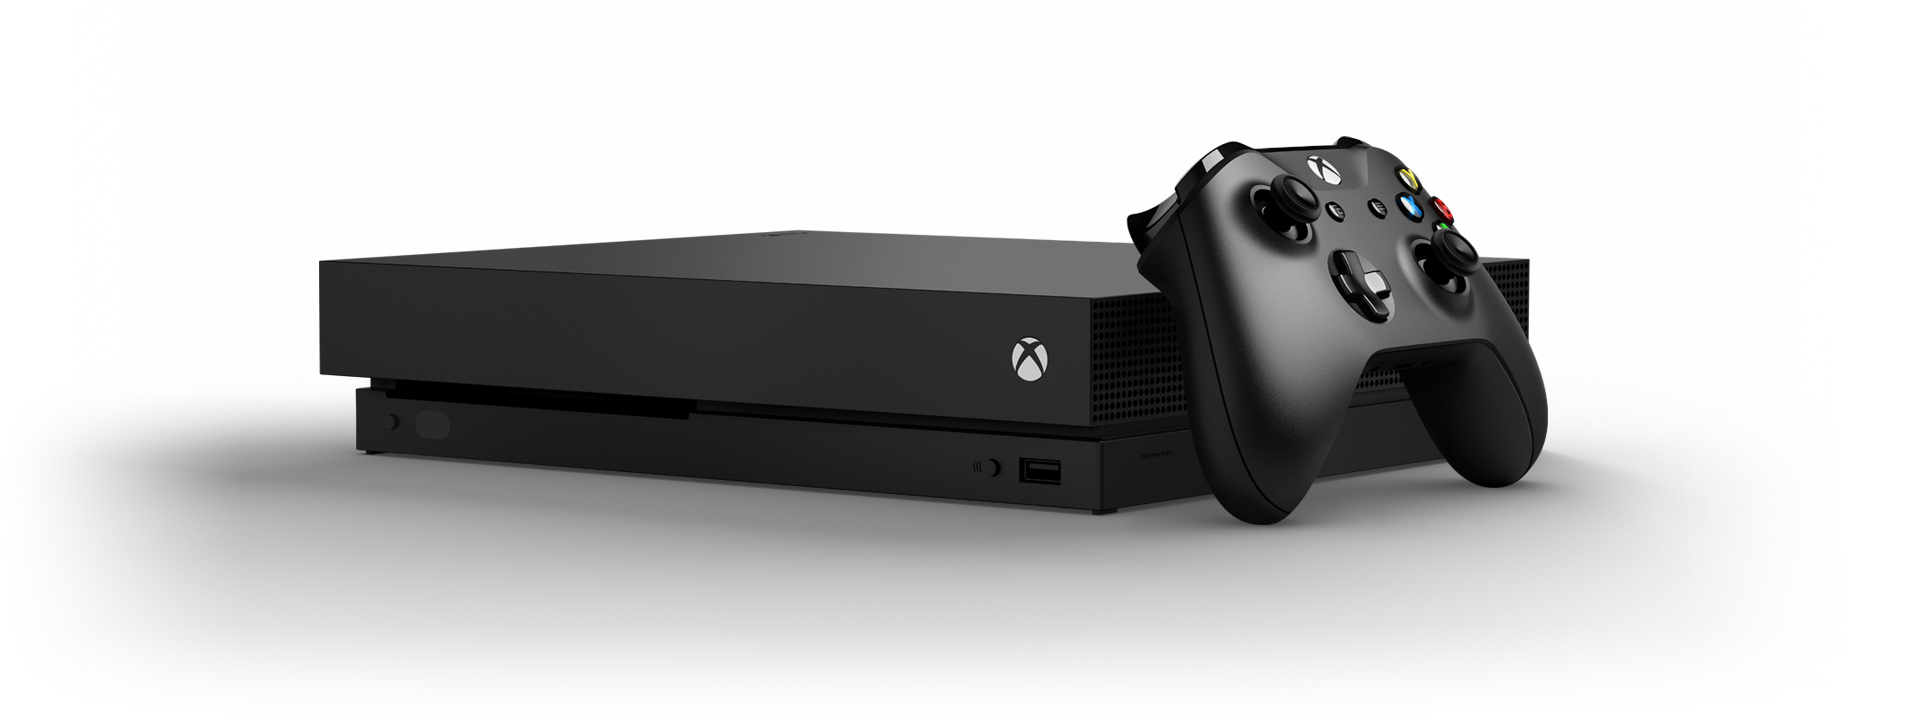 Xbox One X console with an Xbox wireless controller